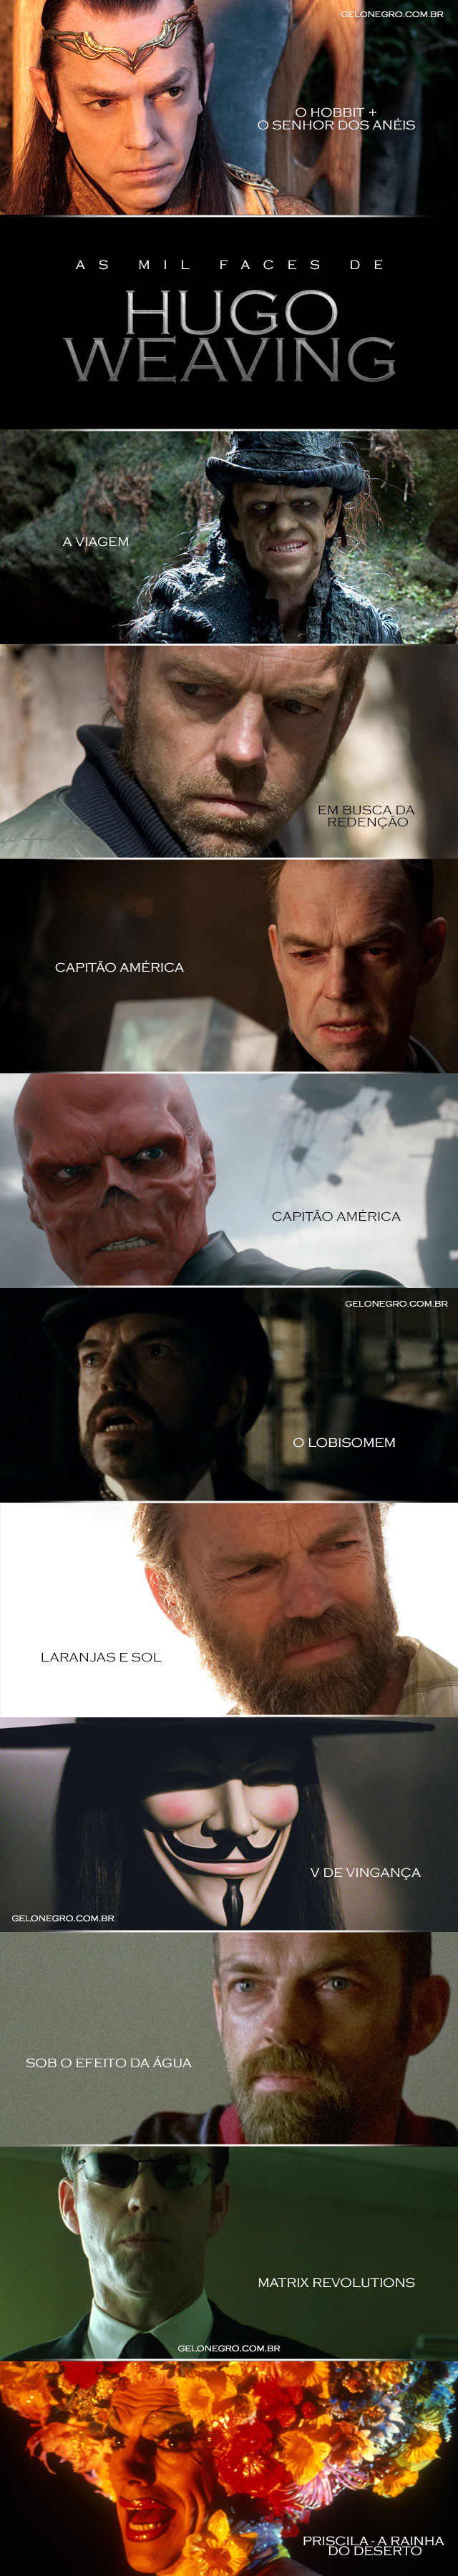 hugo-weaving-movies-filmes